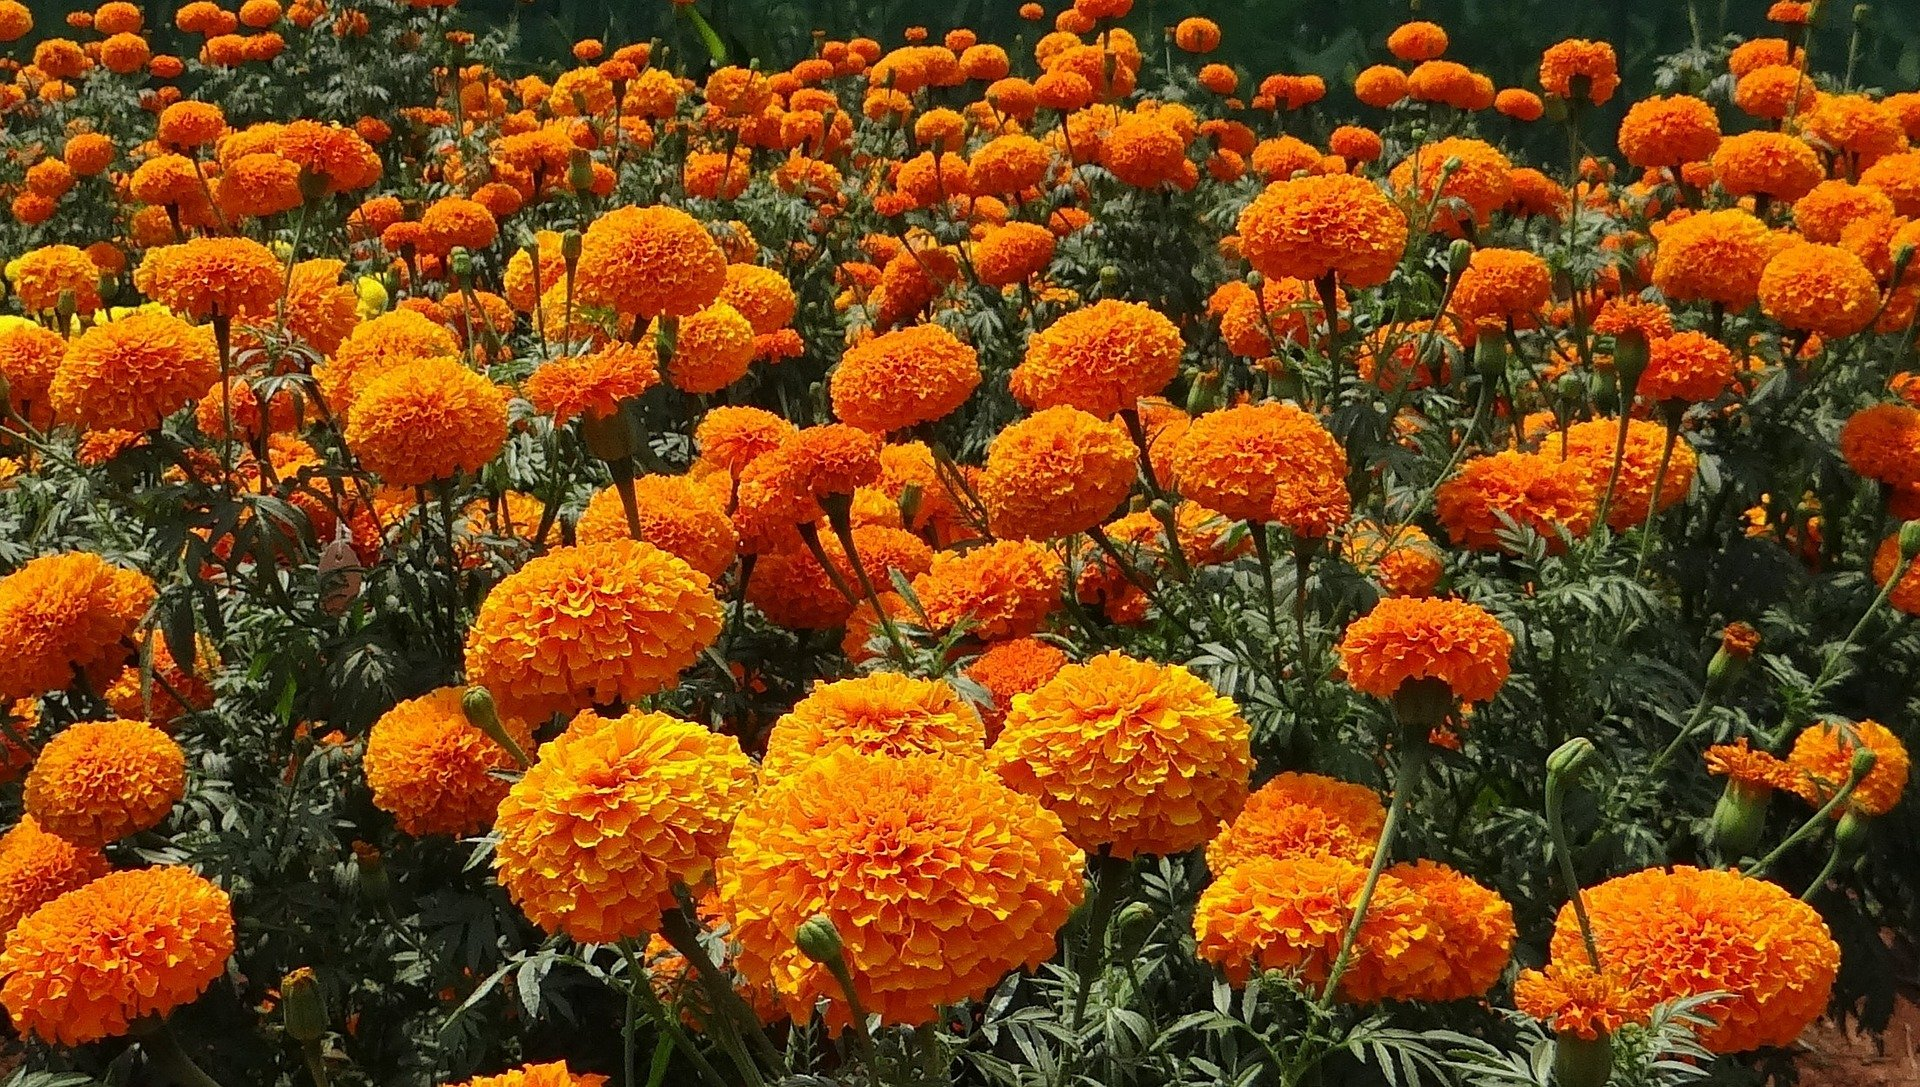 Marigolds from Pixabay